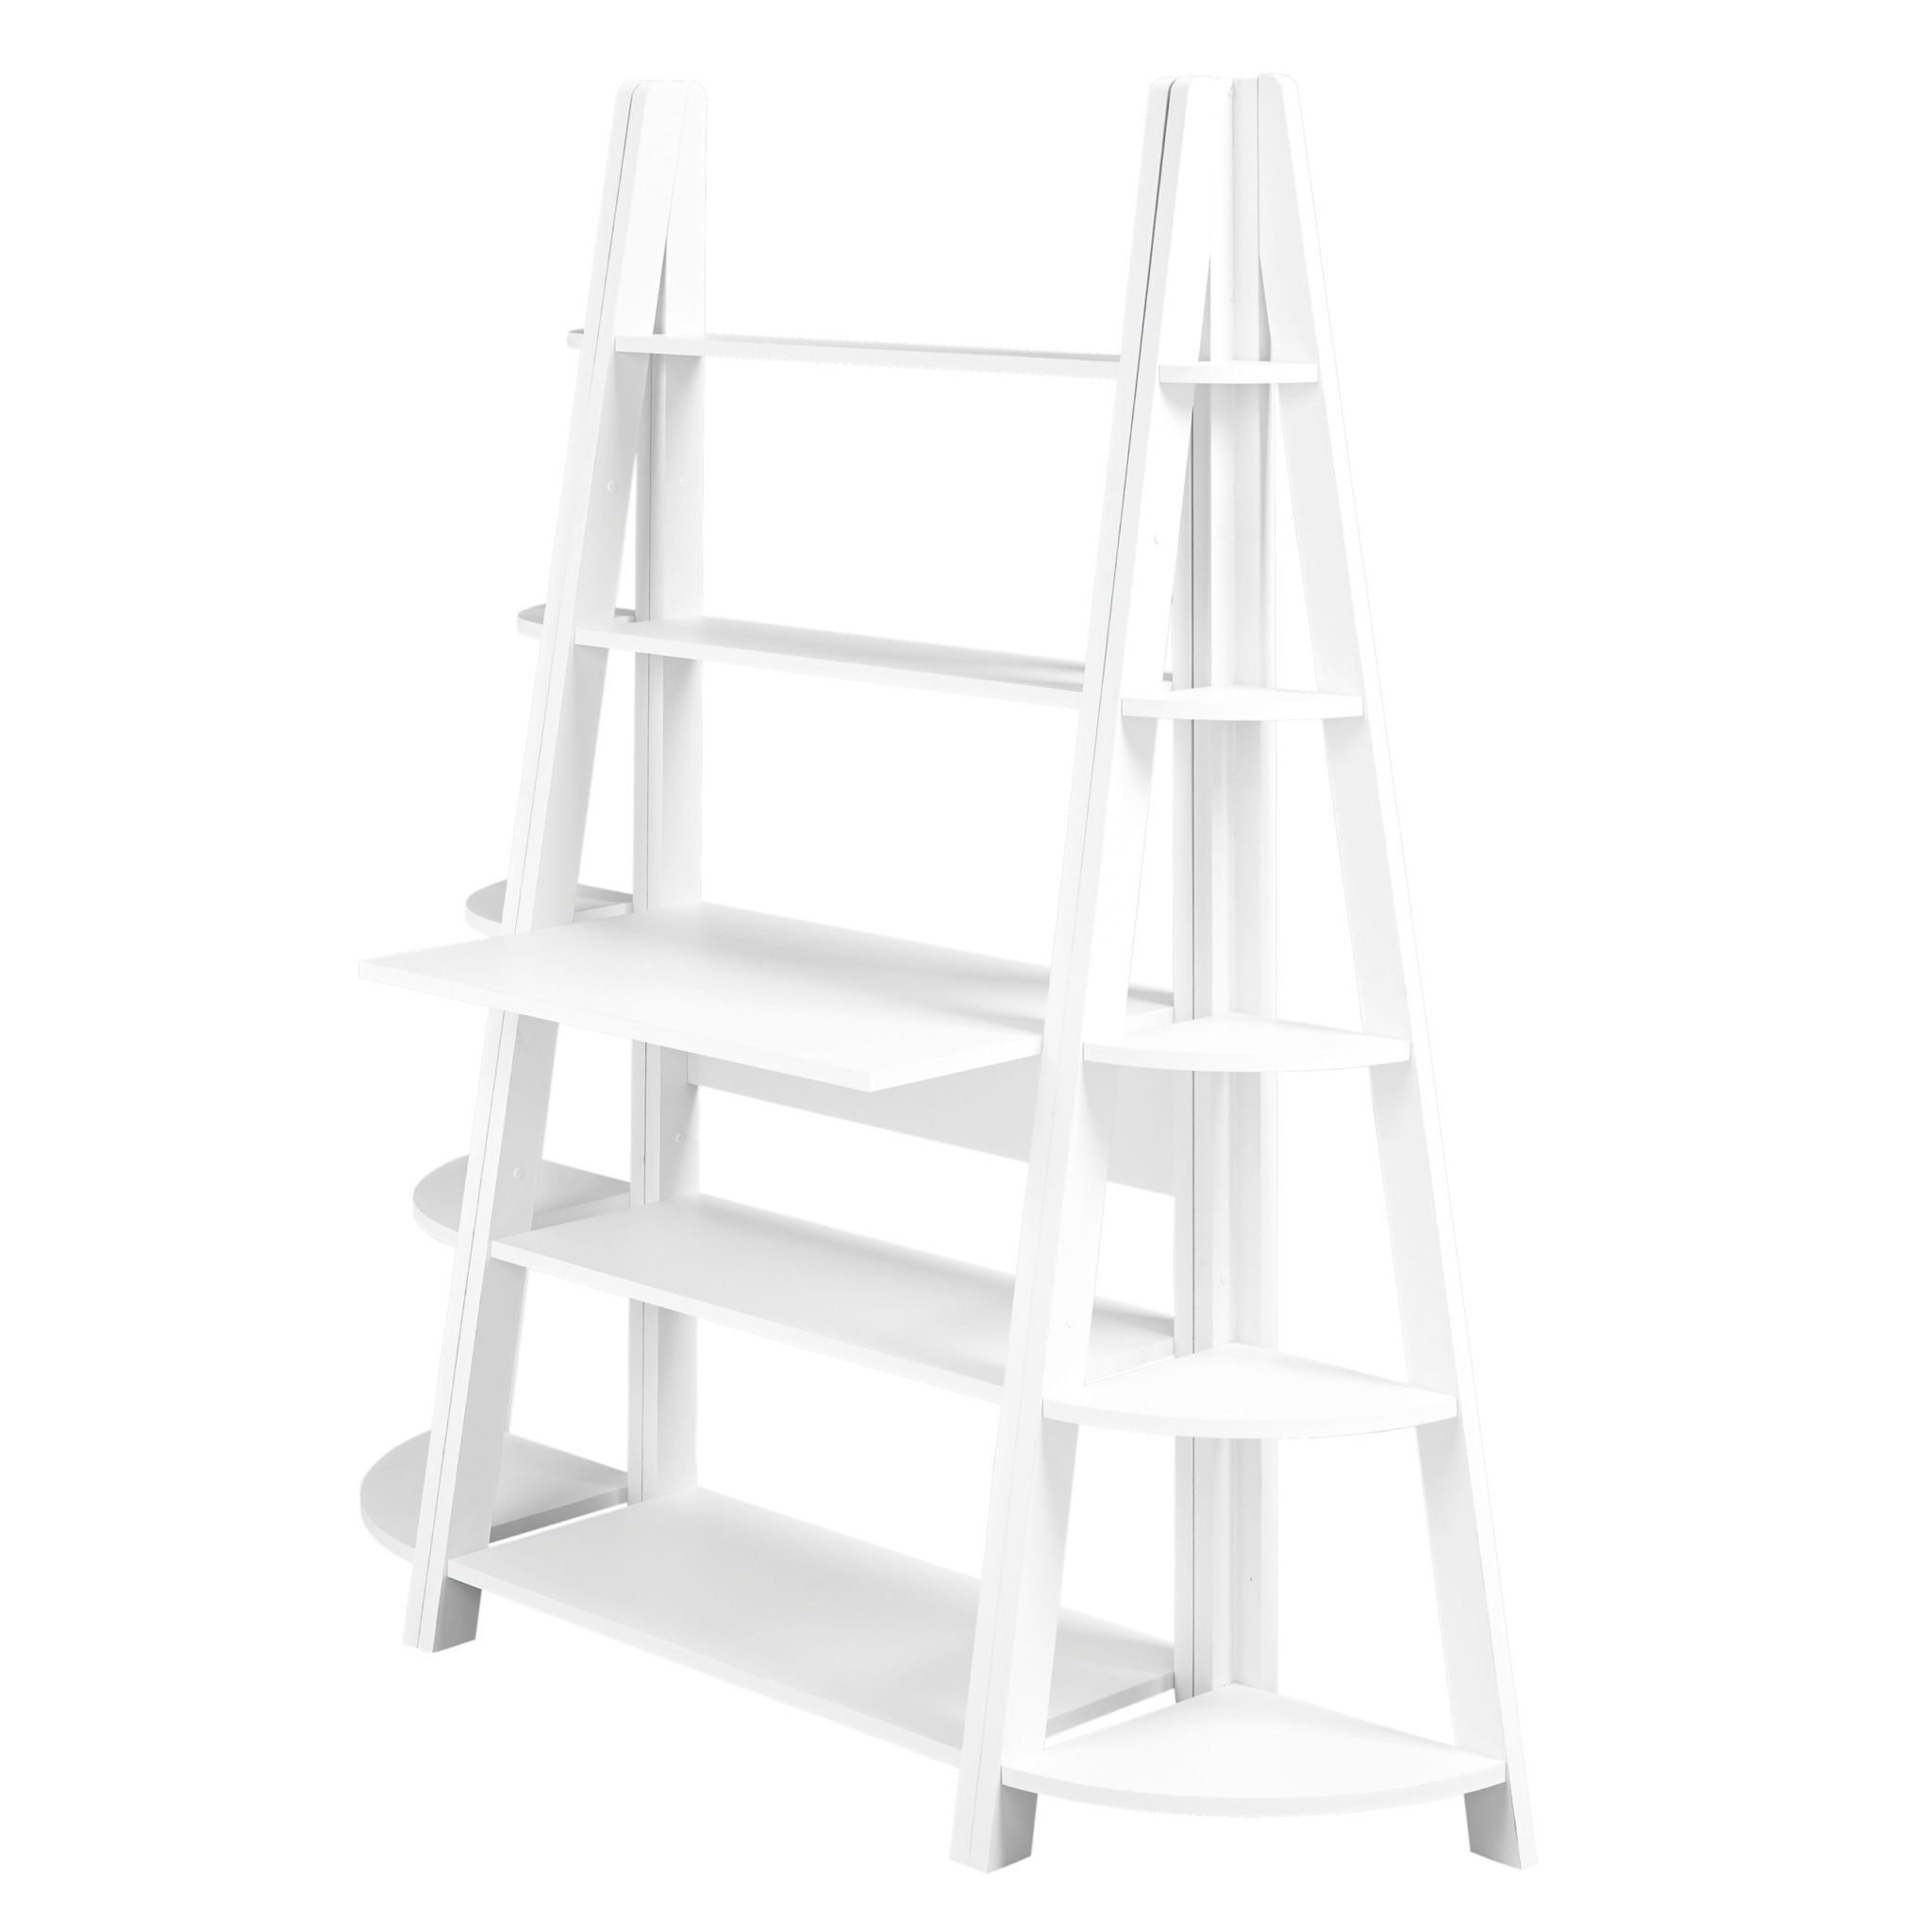 Toddny Ladder Desk White